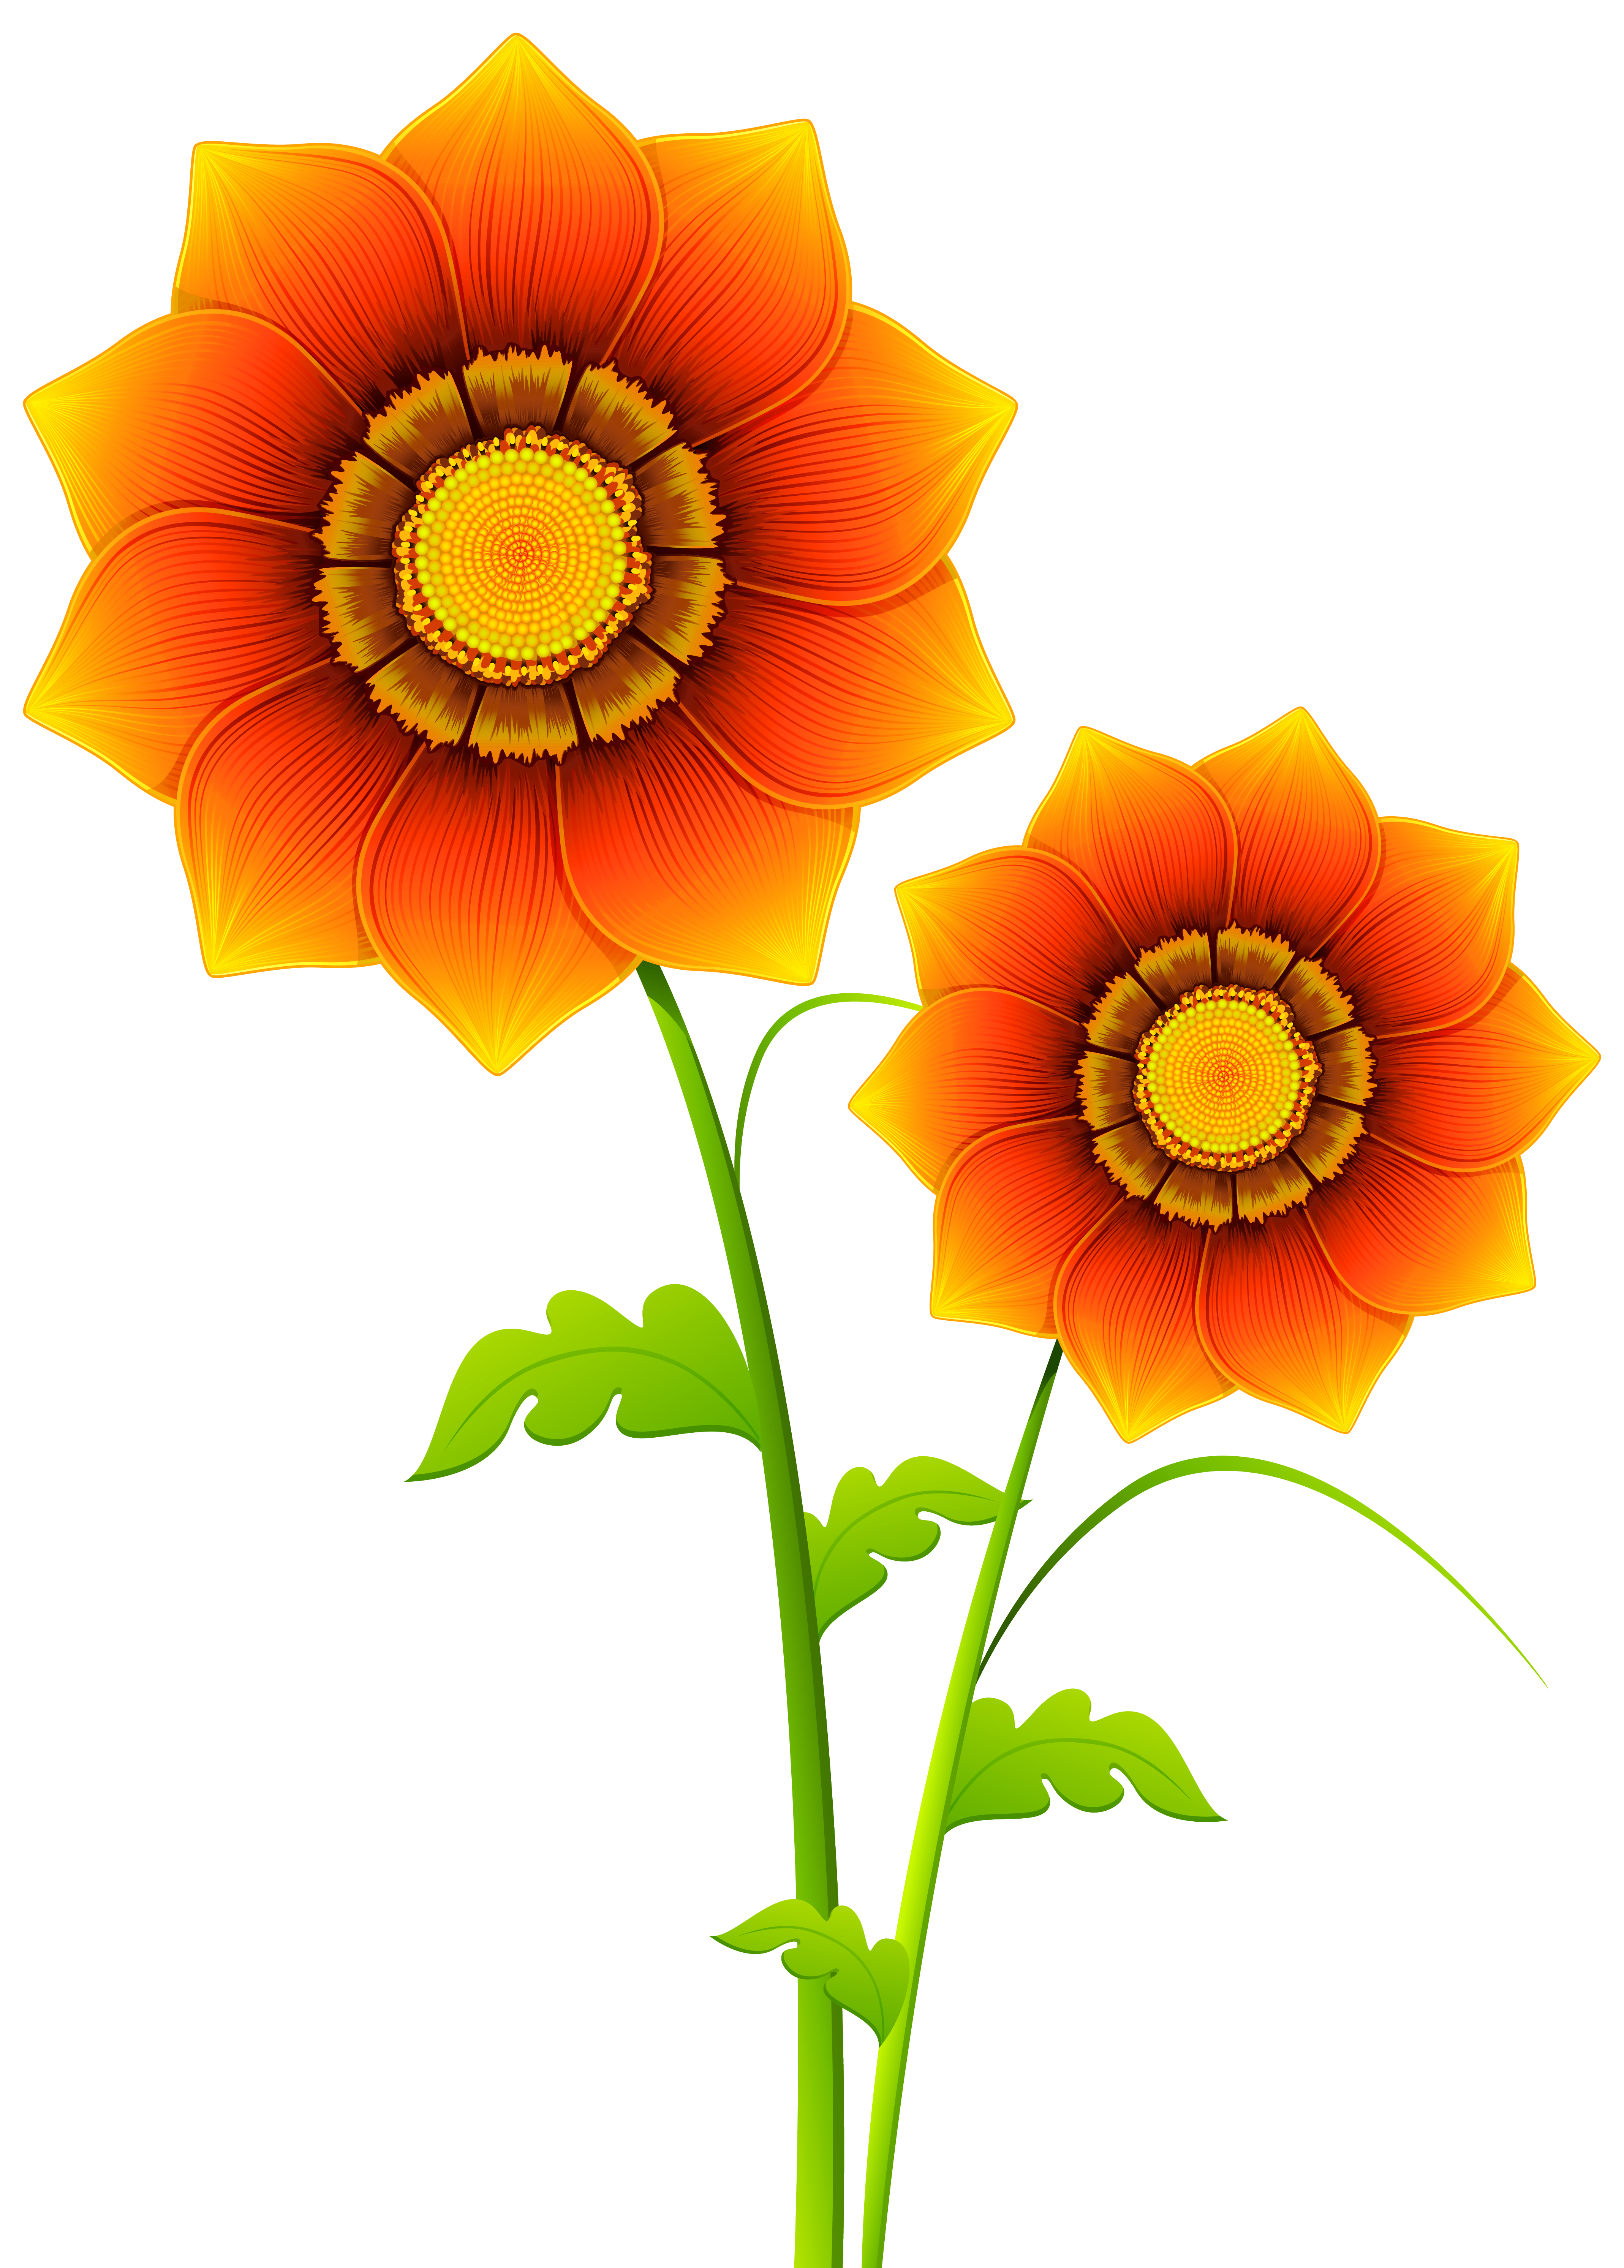 Transparent flowers clipart.